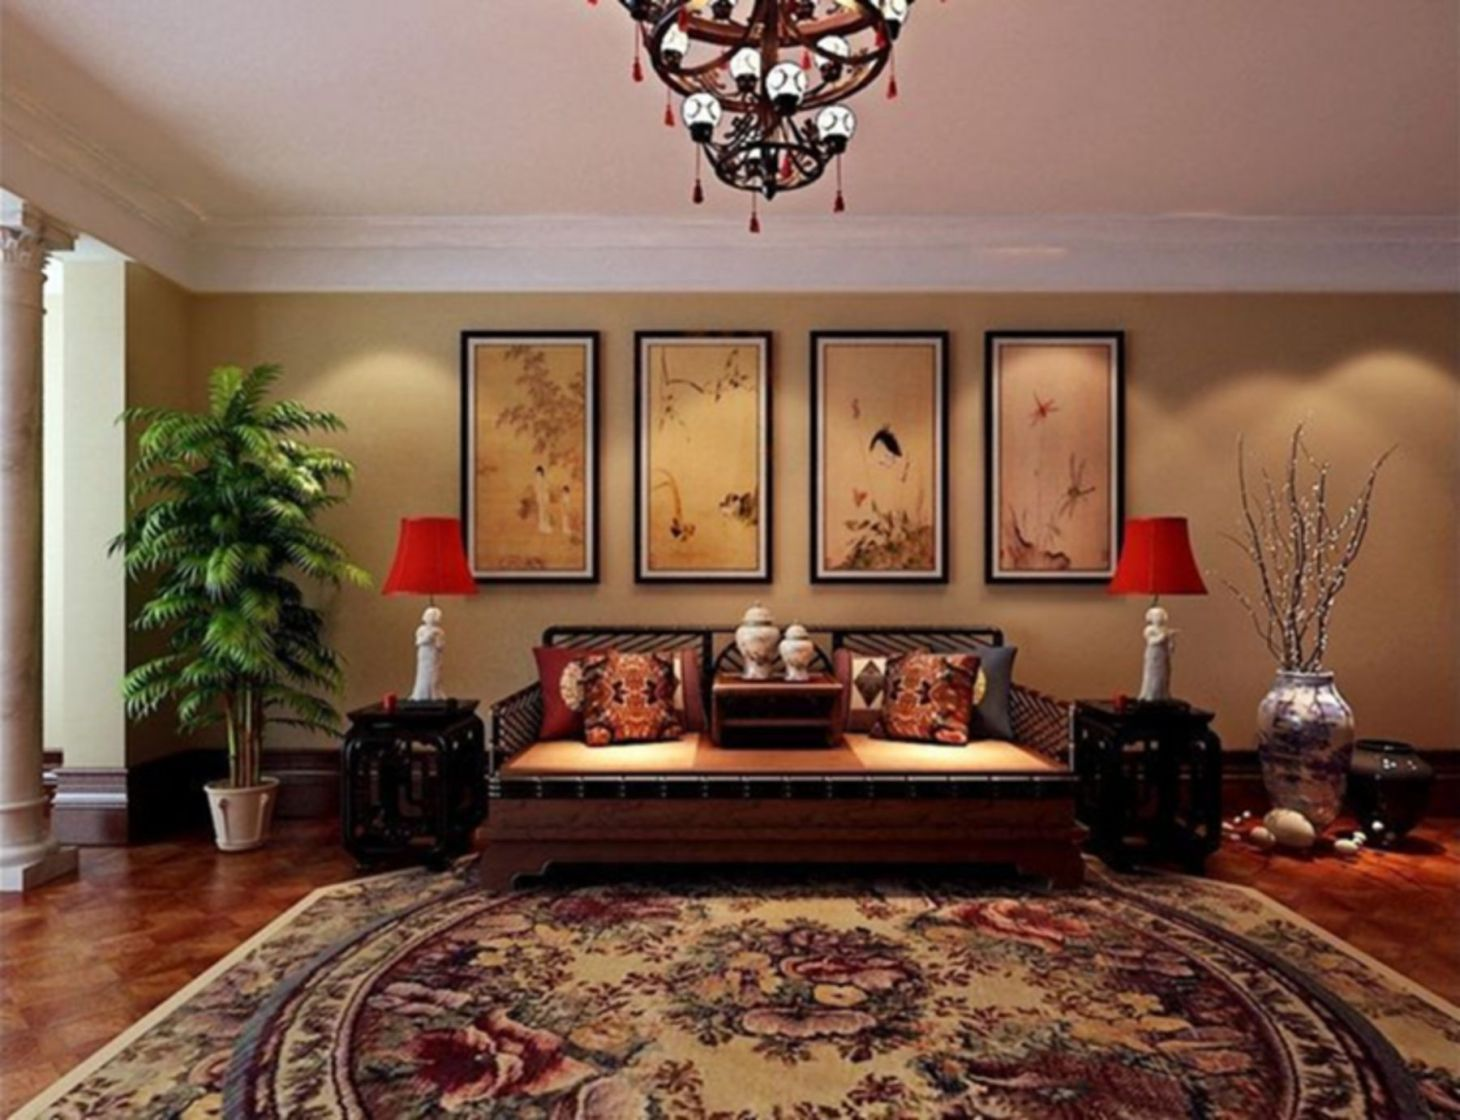 9 Beautiful Living Room Design And Decoration To Make Your Chinese